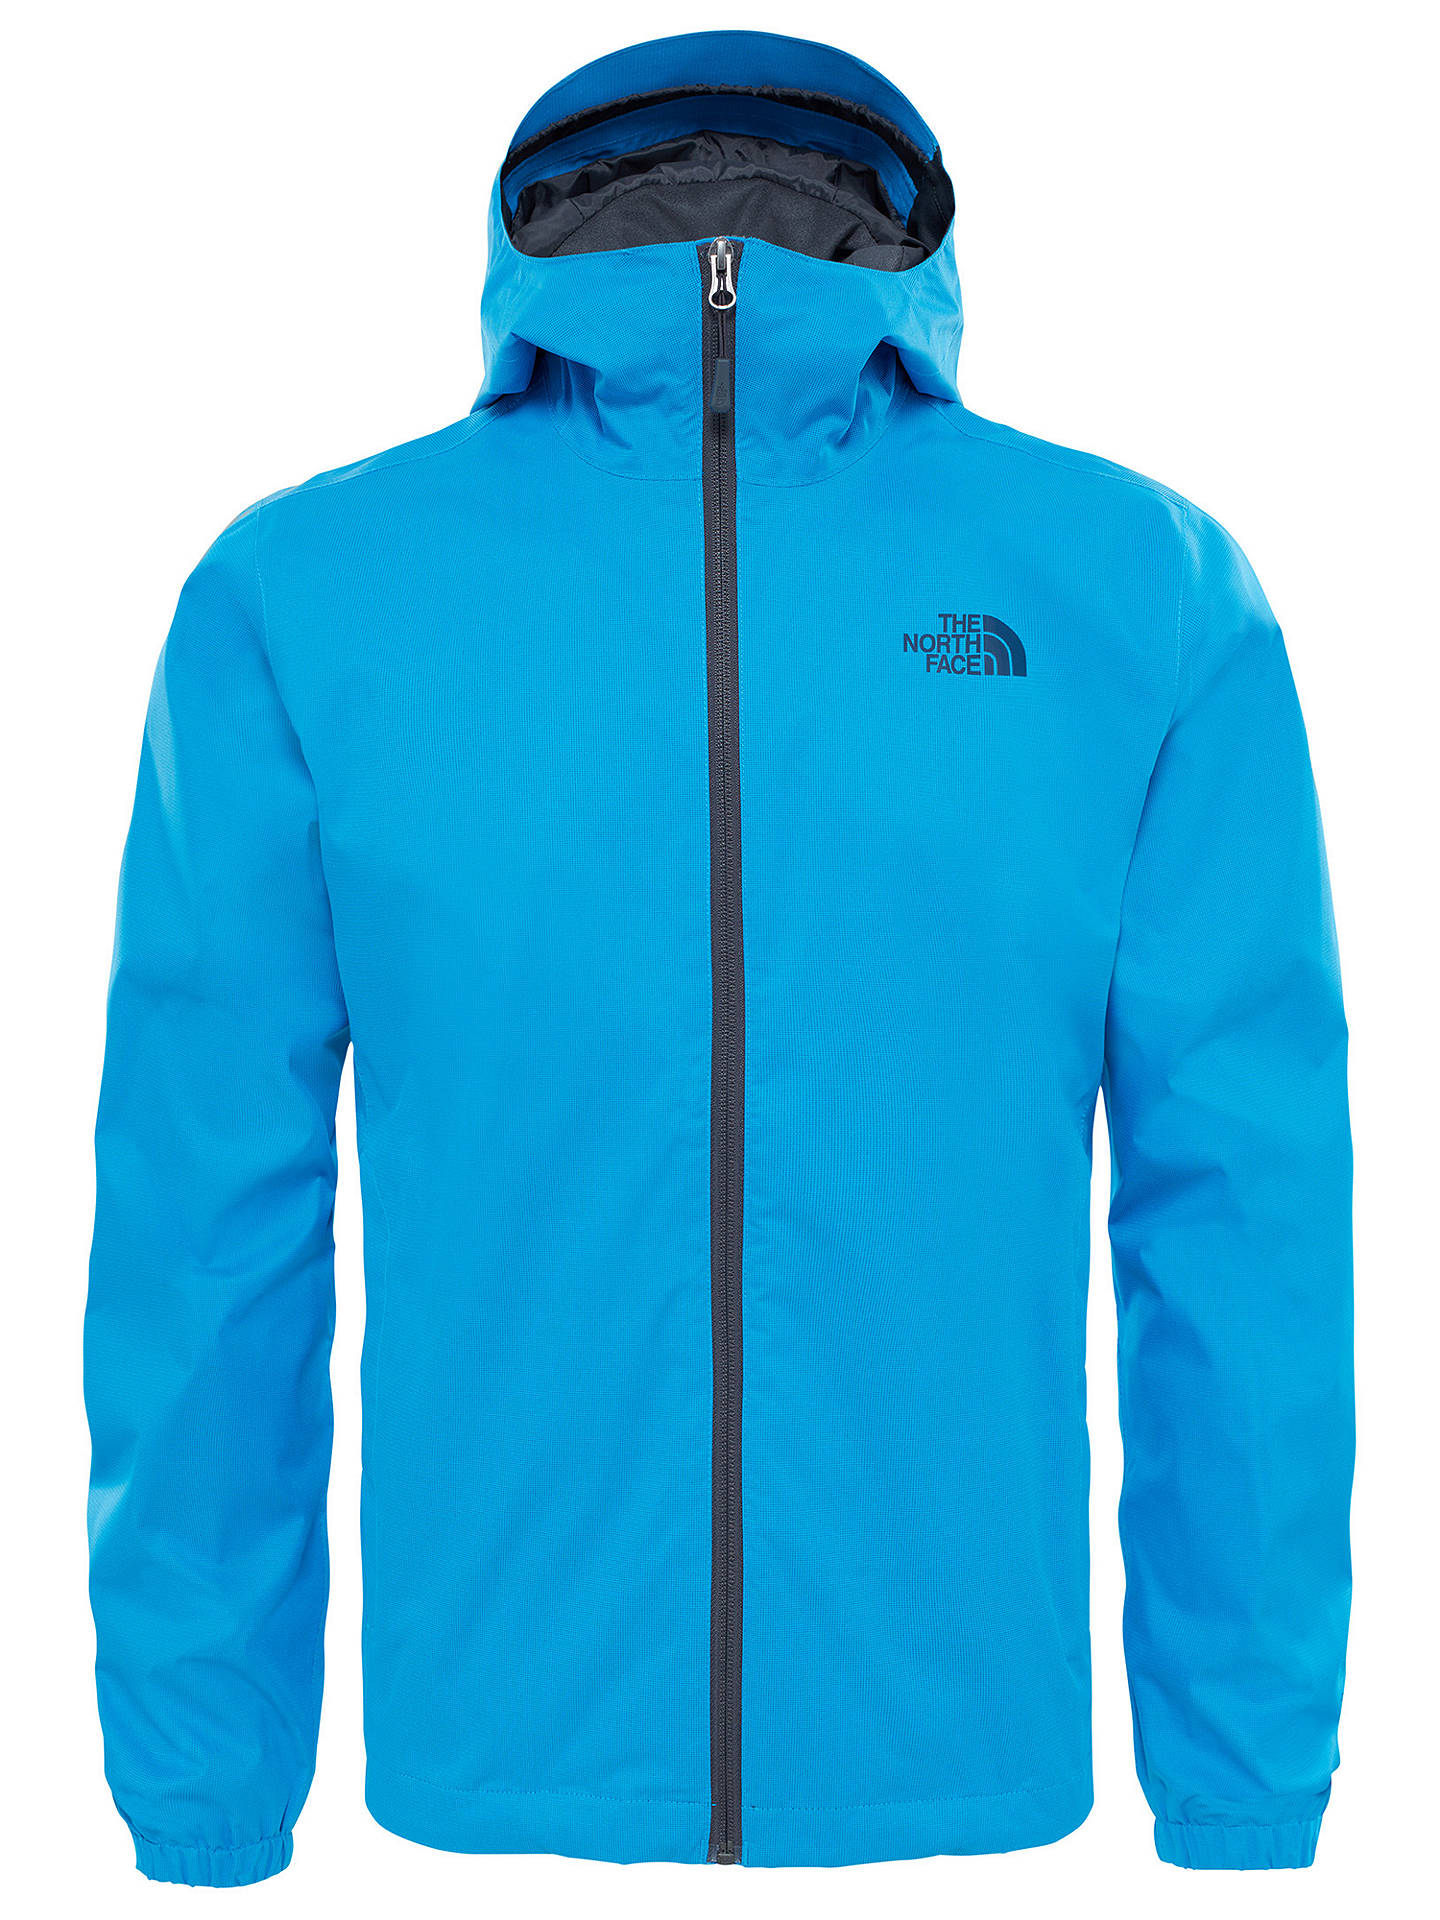 1a141fafe The North Face Quest Men's Waterproof Jacket, Blue at John Lewis ...